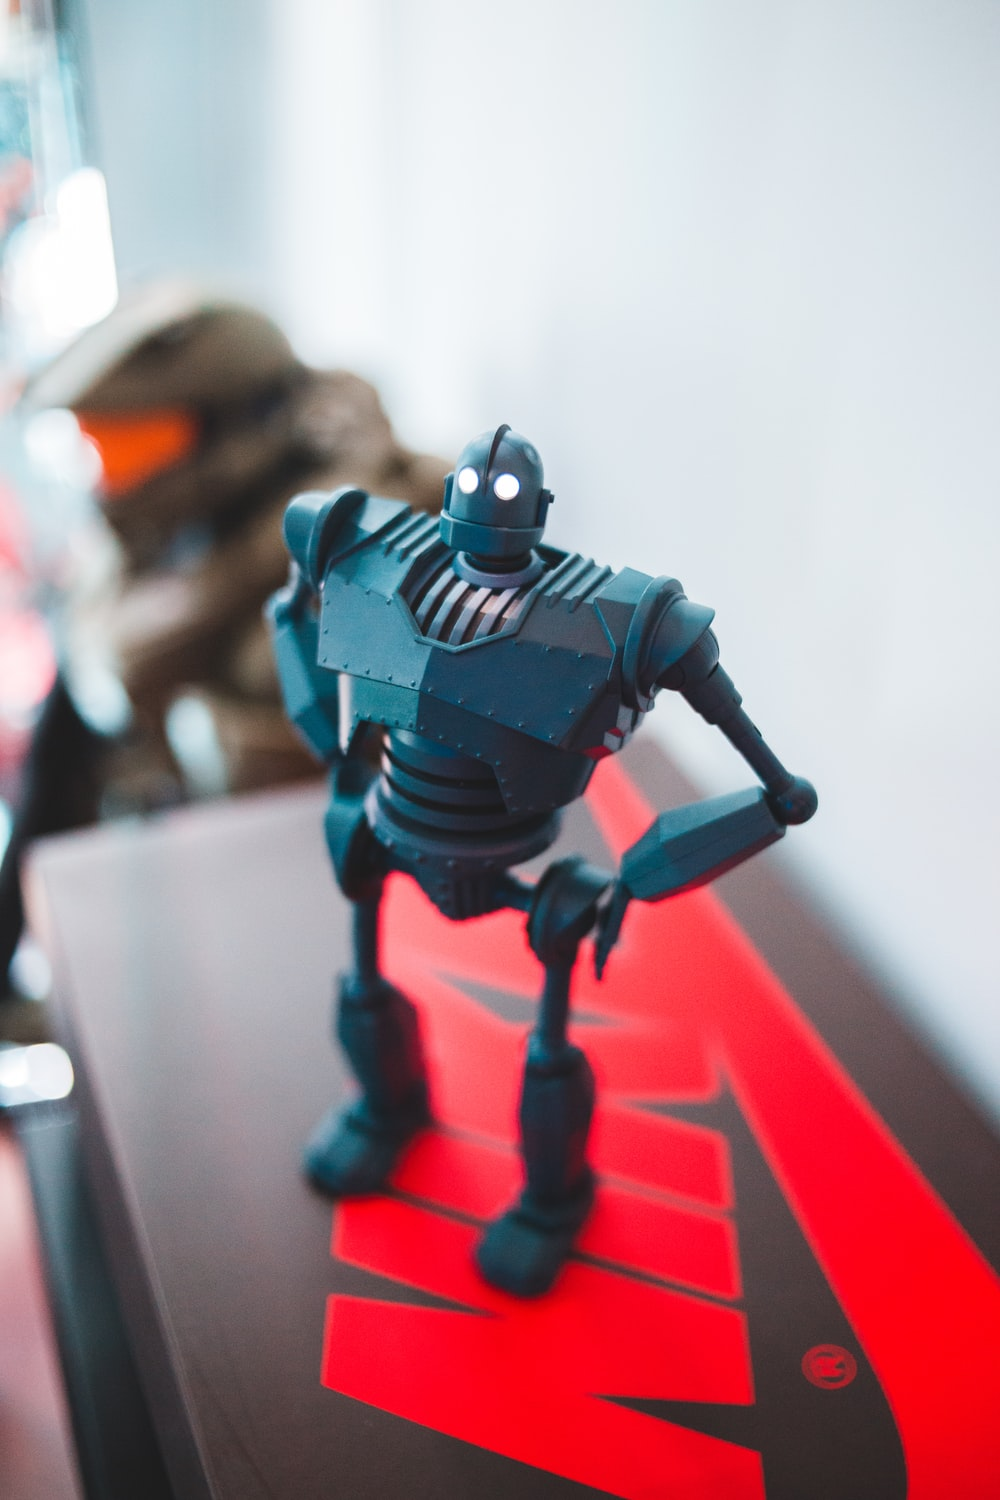 black and red robot action figure